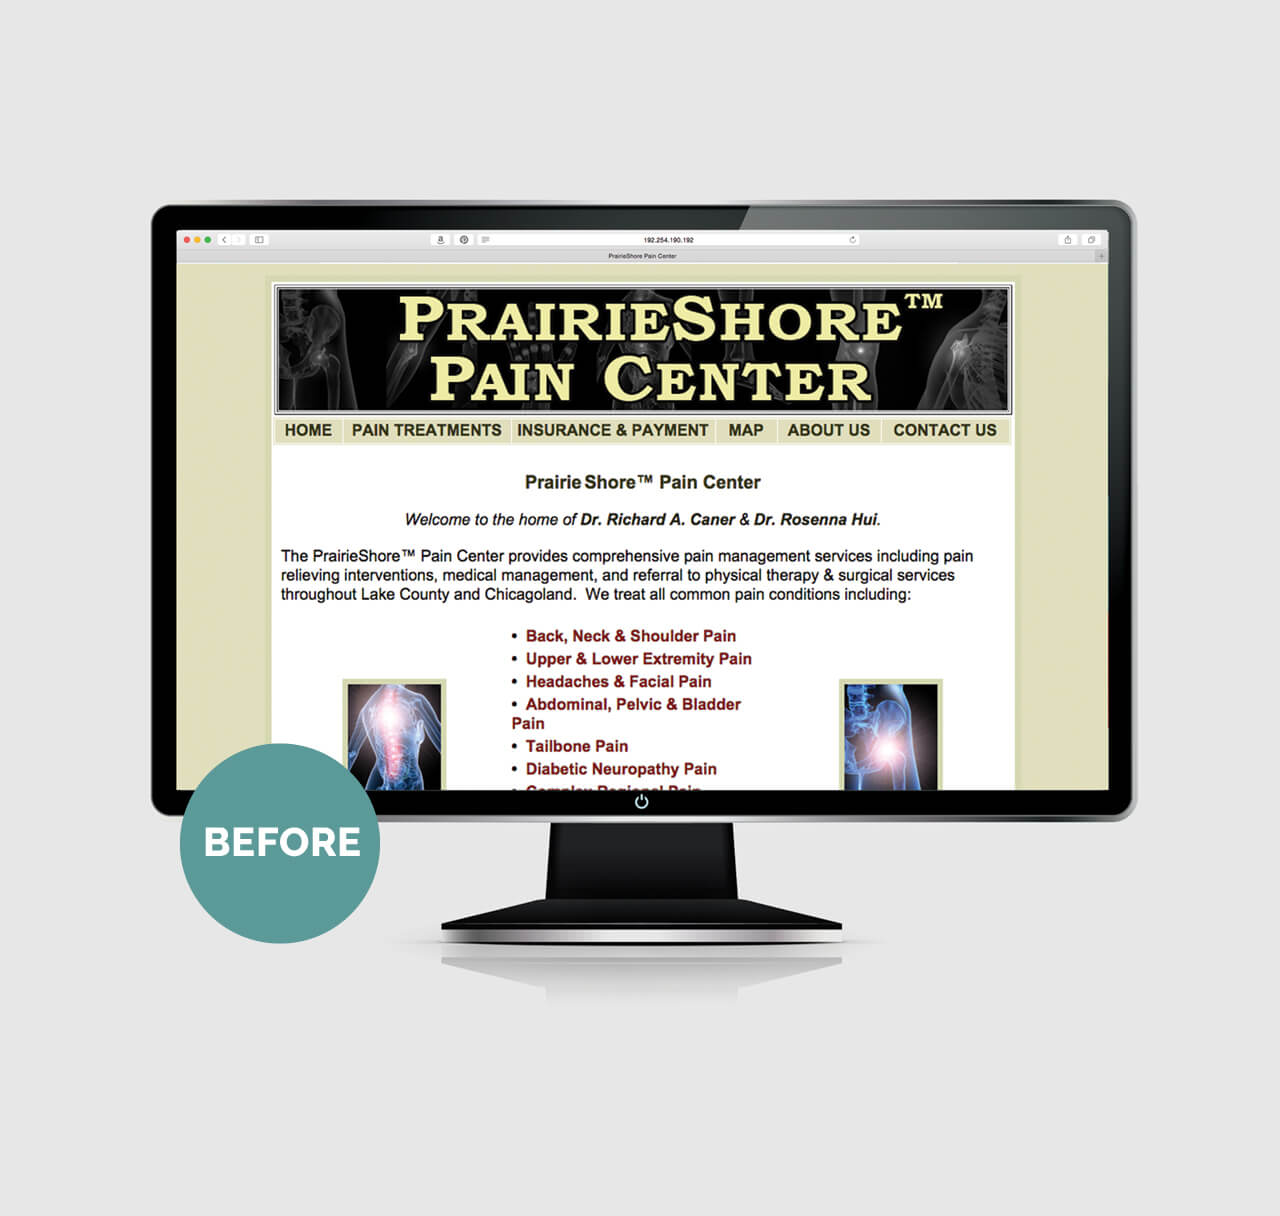 PrairieShore before image